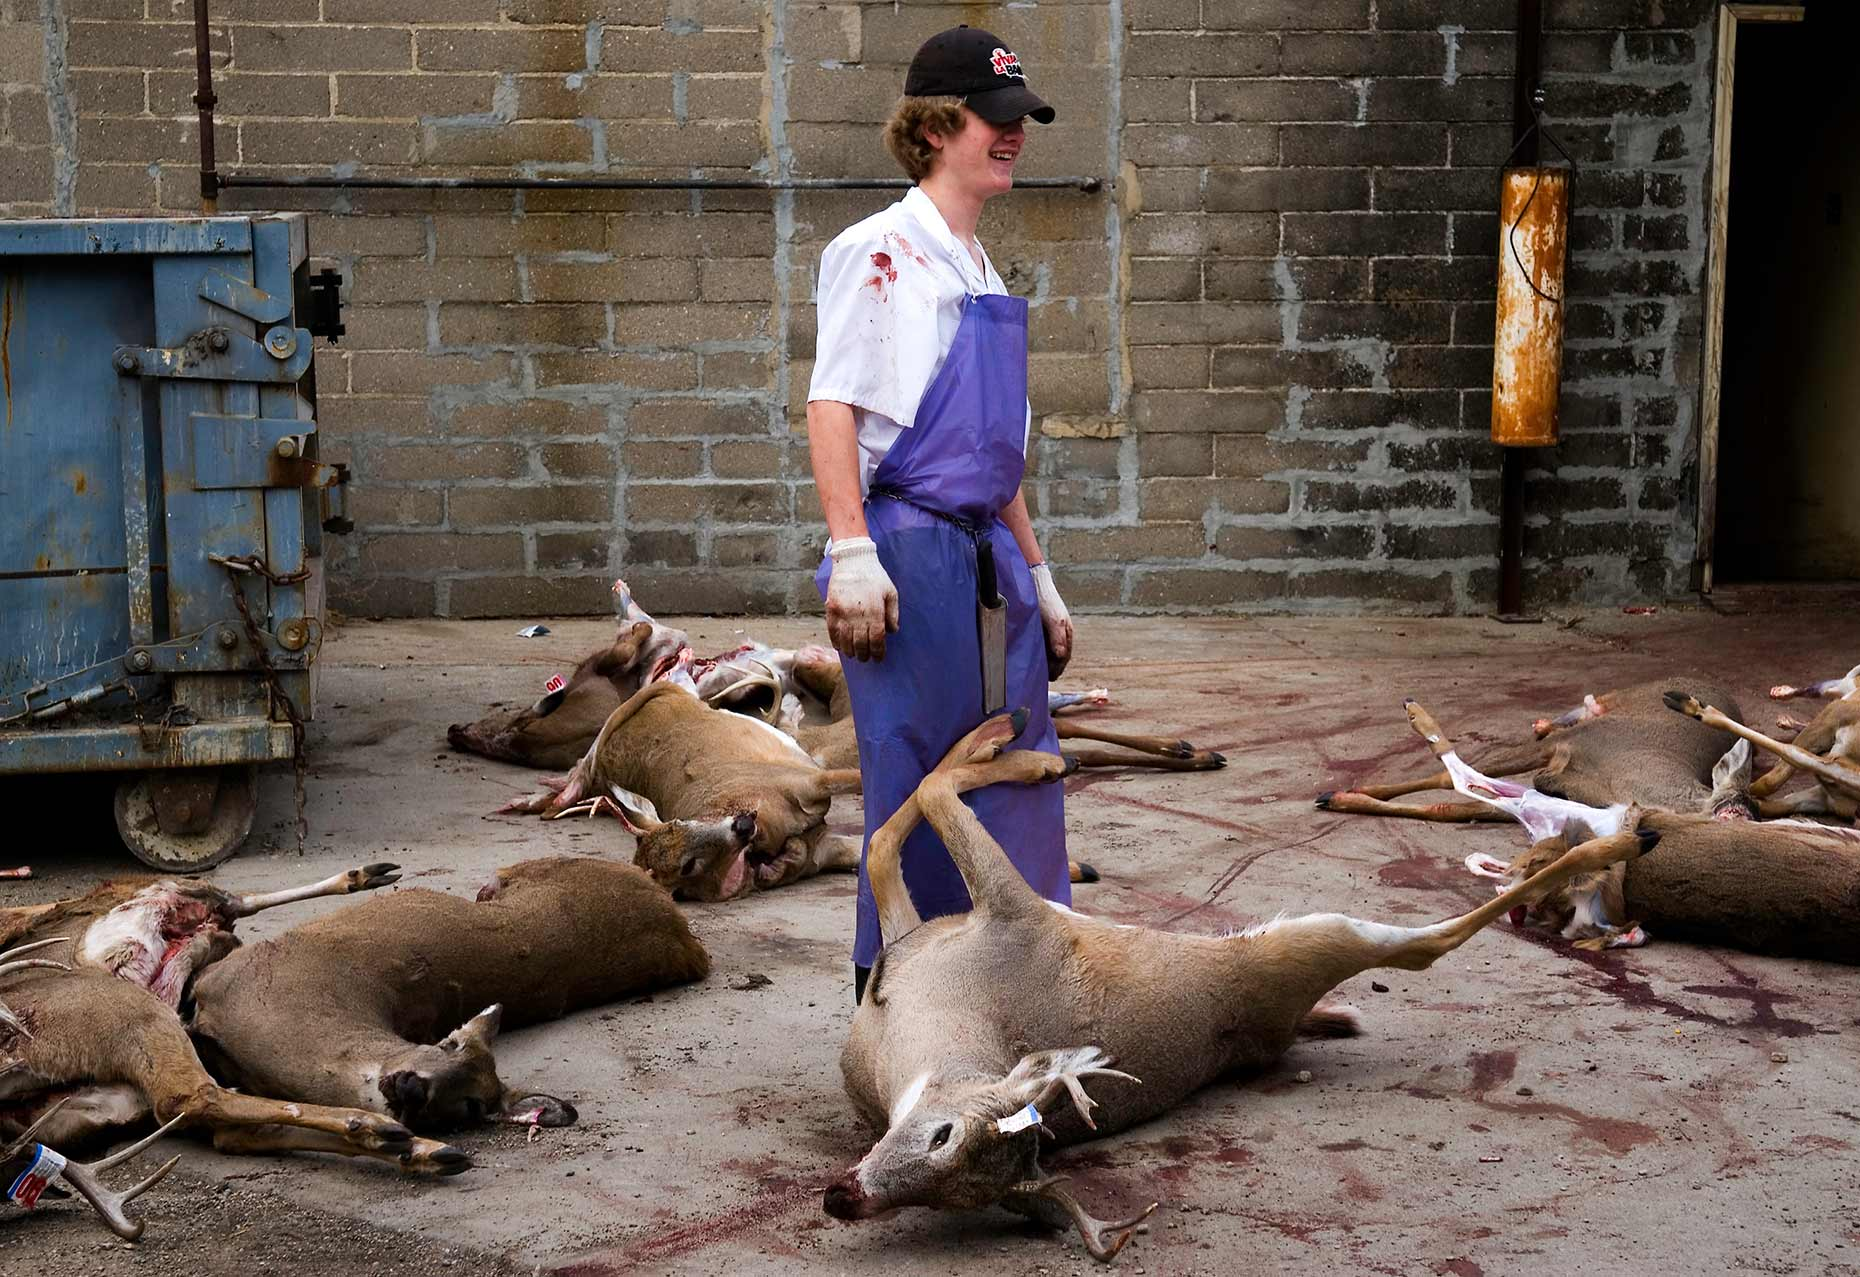 A North Dakota butcher shop employee photographed by North Dakota photojournalist Dan Koeck